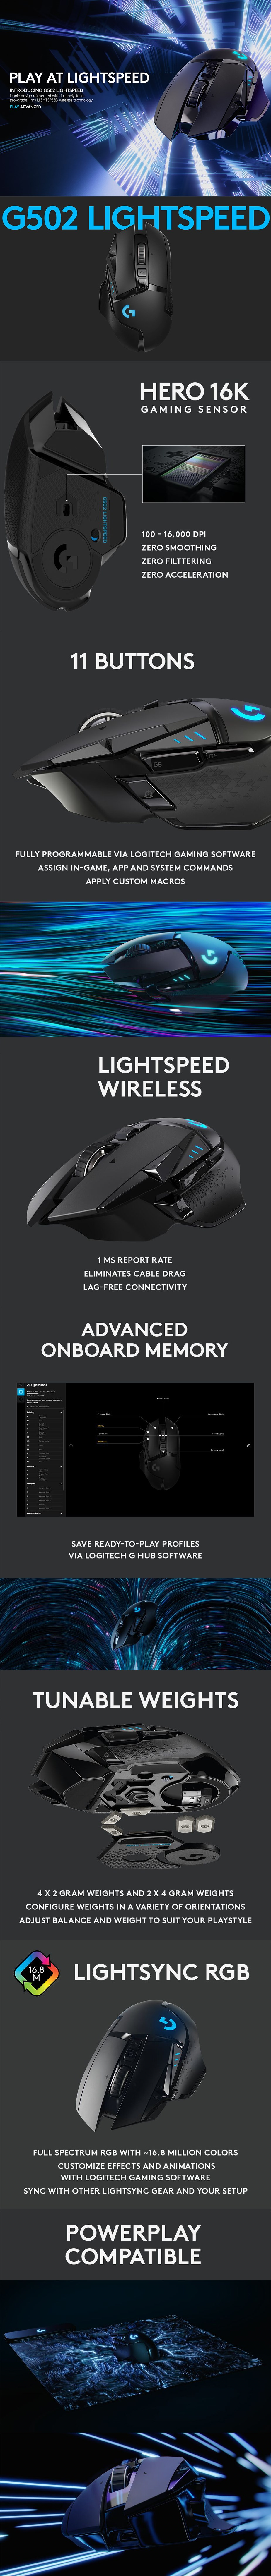 Logitech G502 Lightspeed Wireless Gaming Mouse - Desktop Overview 1